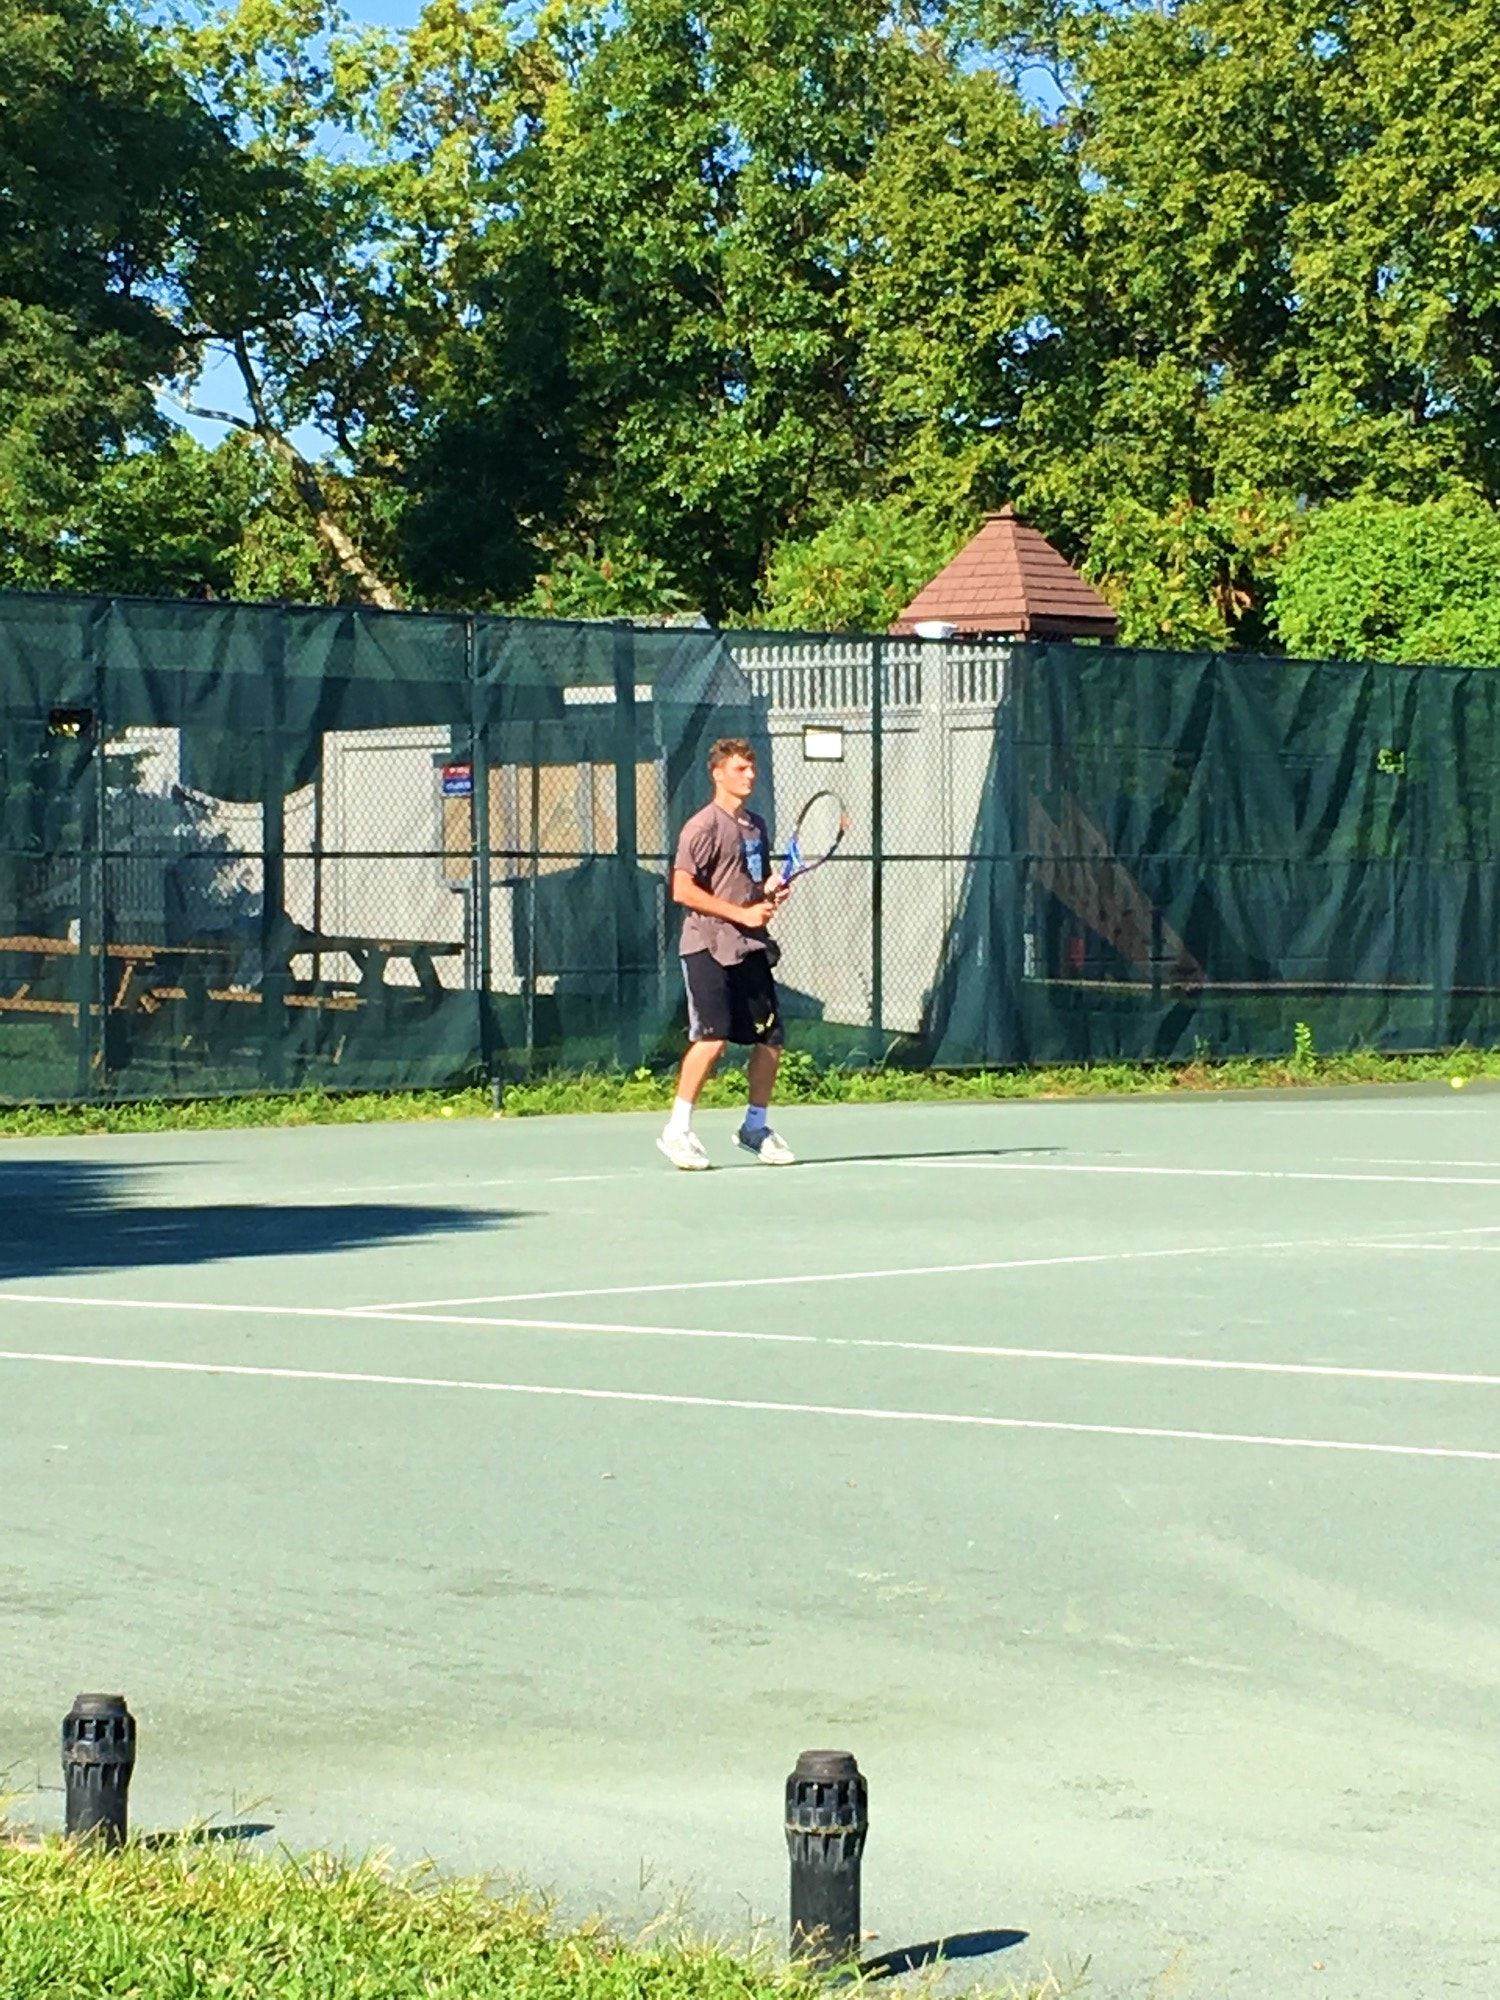 Philip D. teaches tennis lessons in Quincy, MA